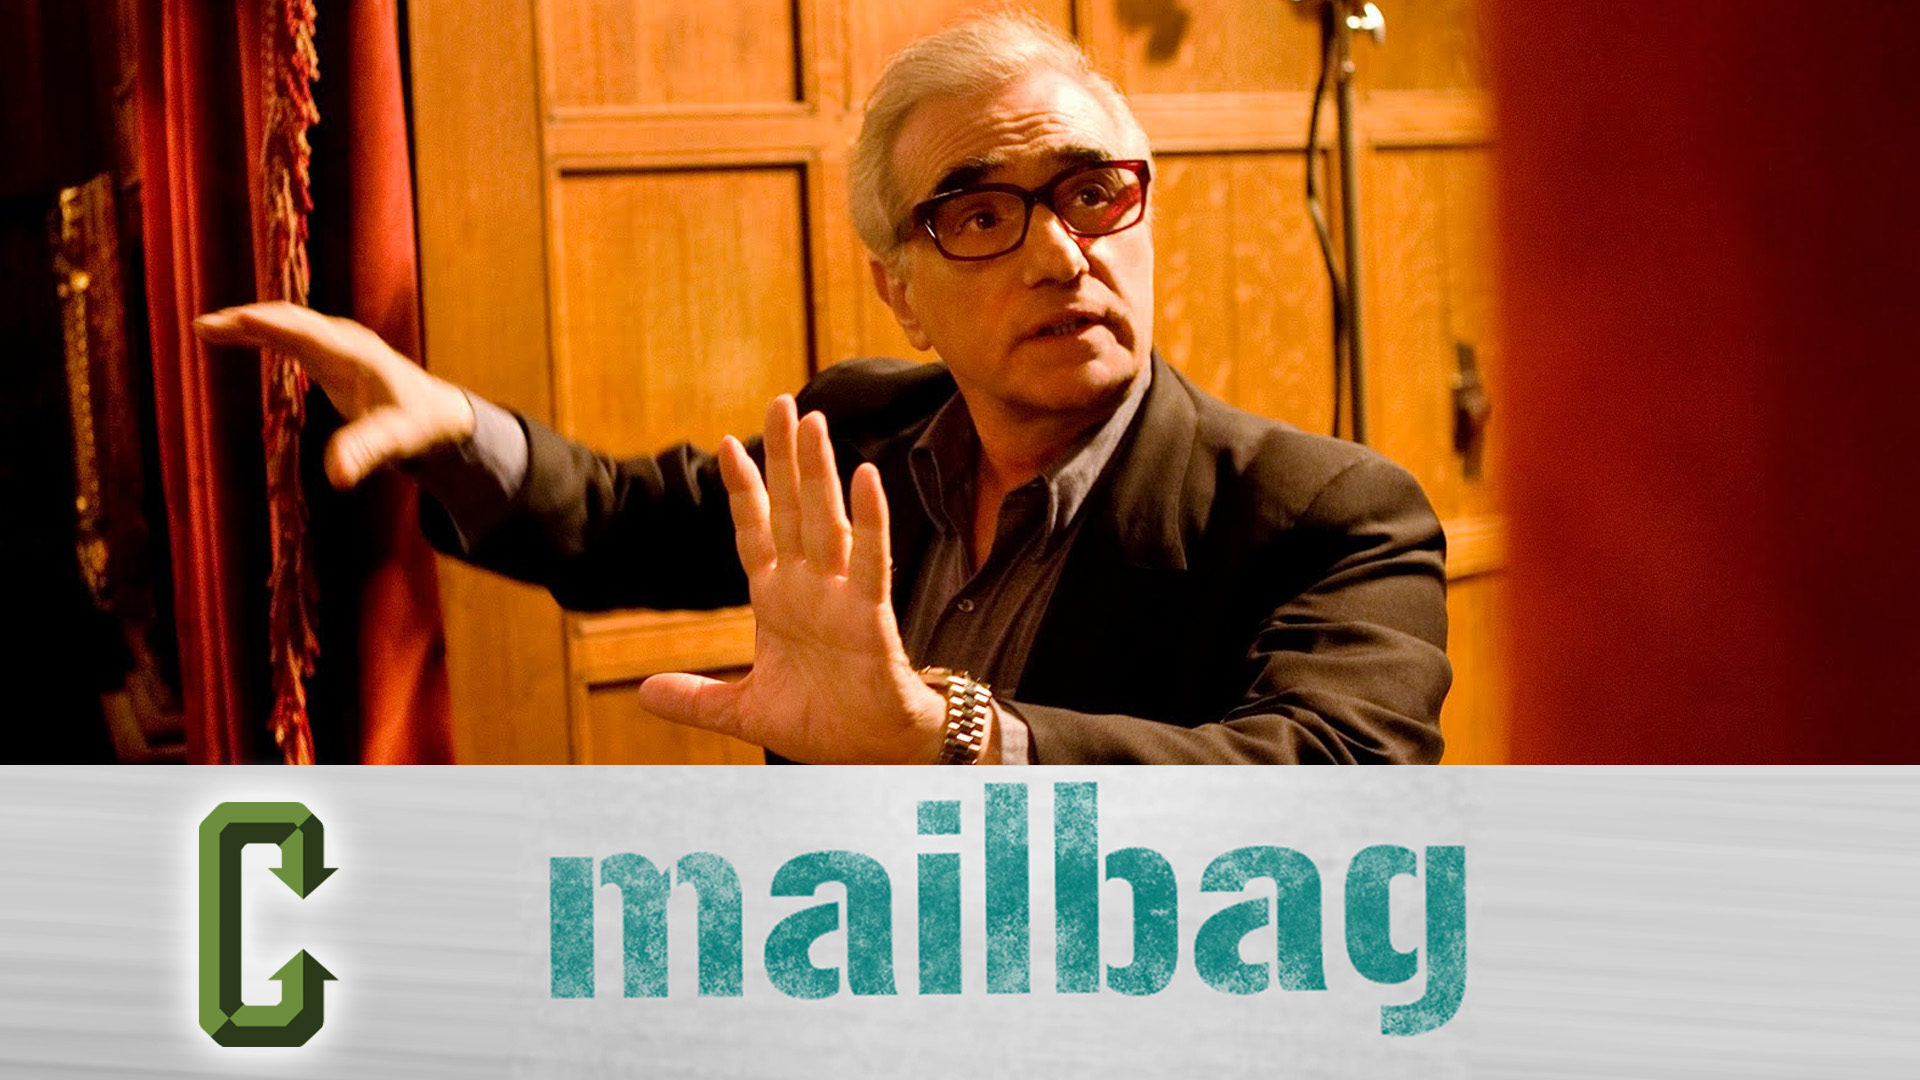 Collider Mailbag - What's The Process To Become A Director?